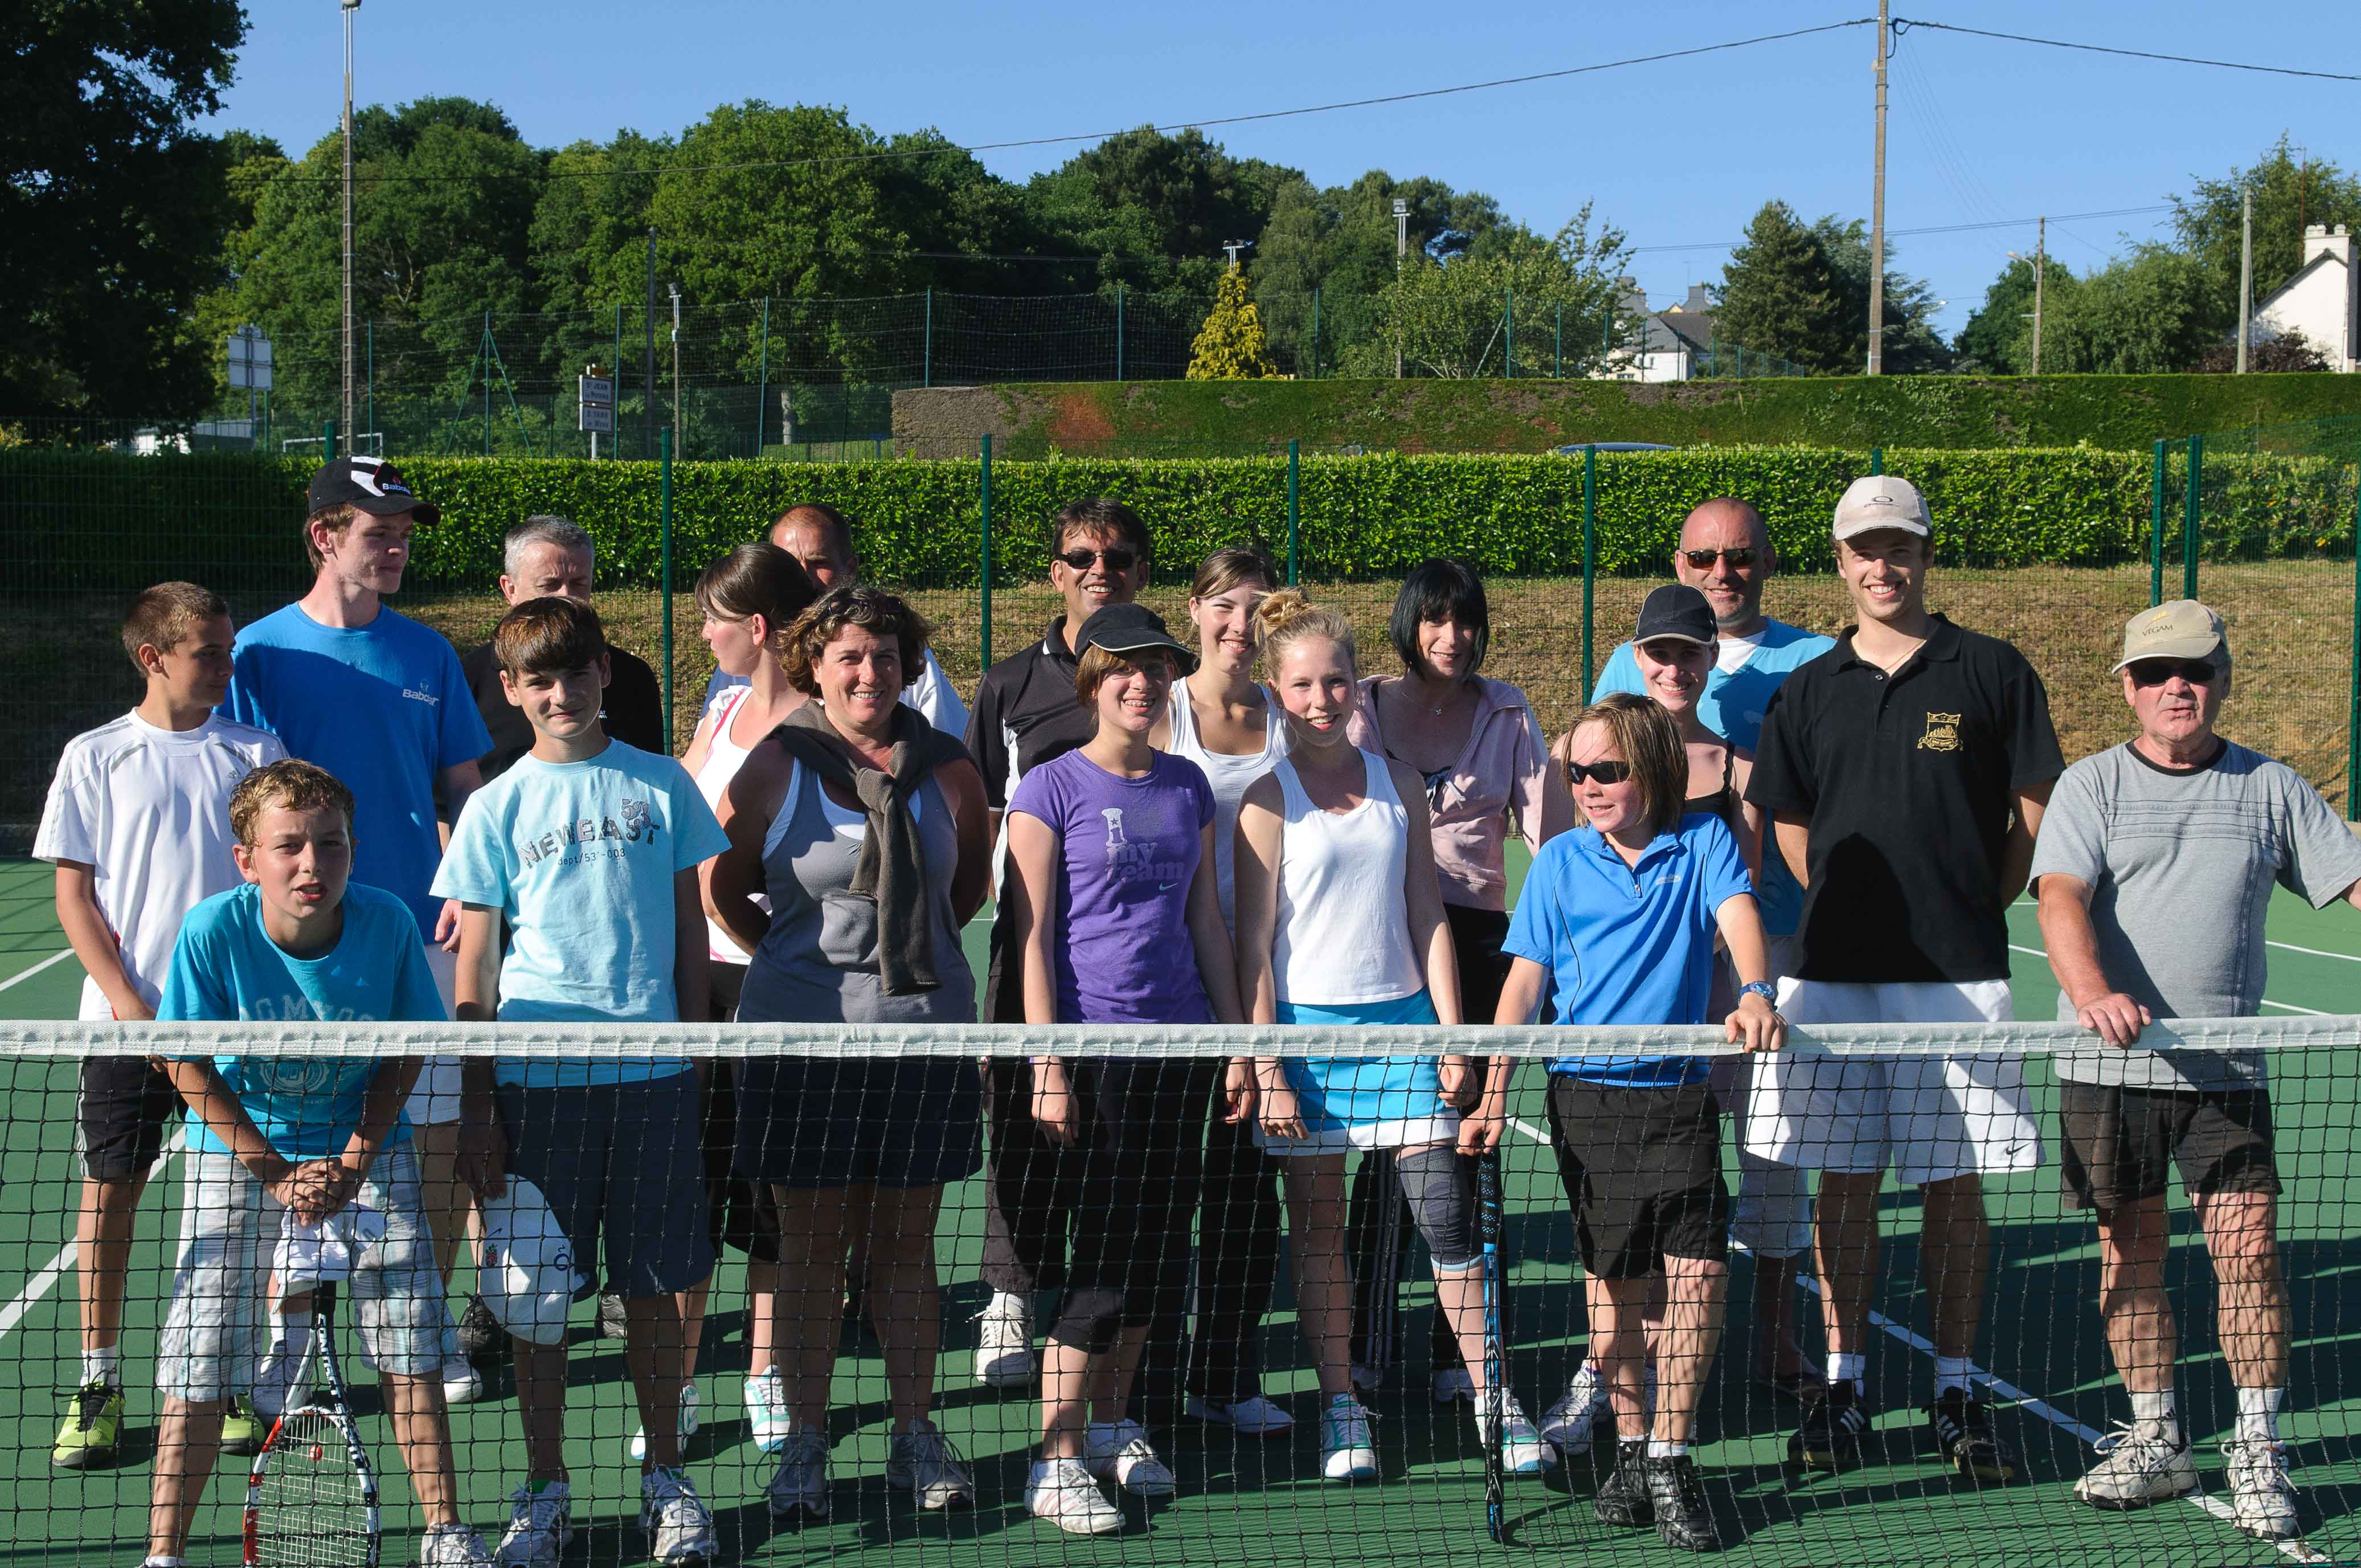 tournoi tennis 2011